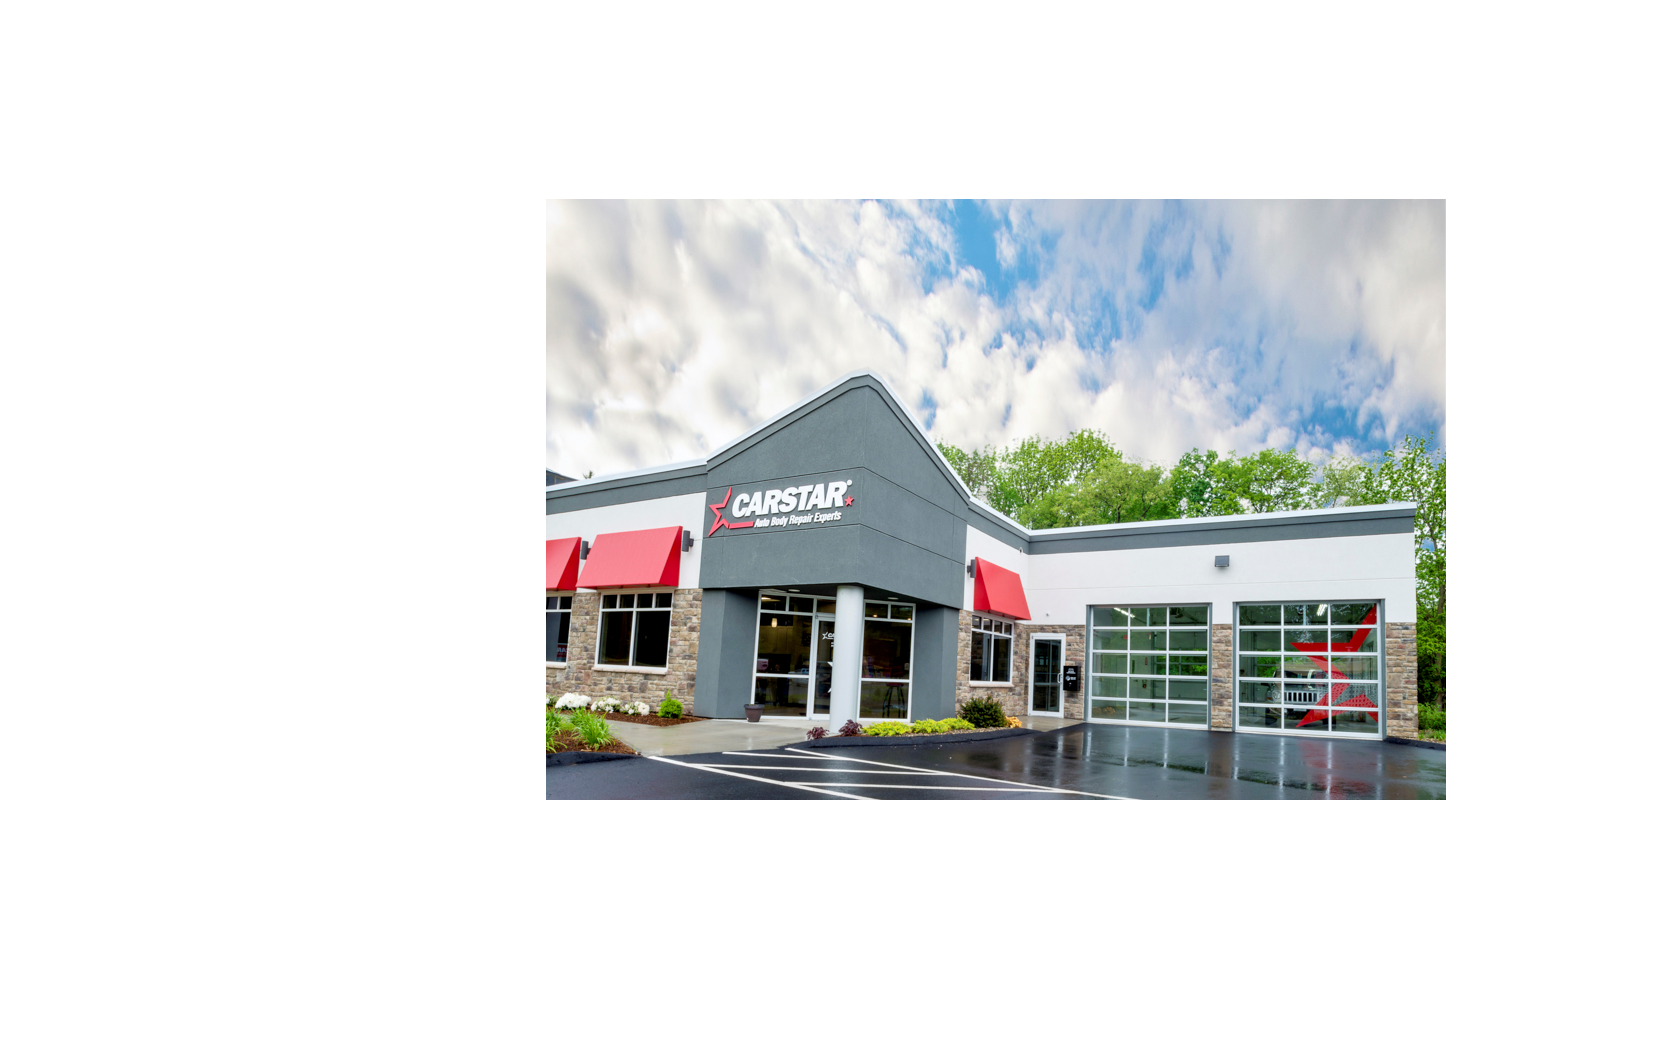 Carstar | carstarberlinautobodyrepair